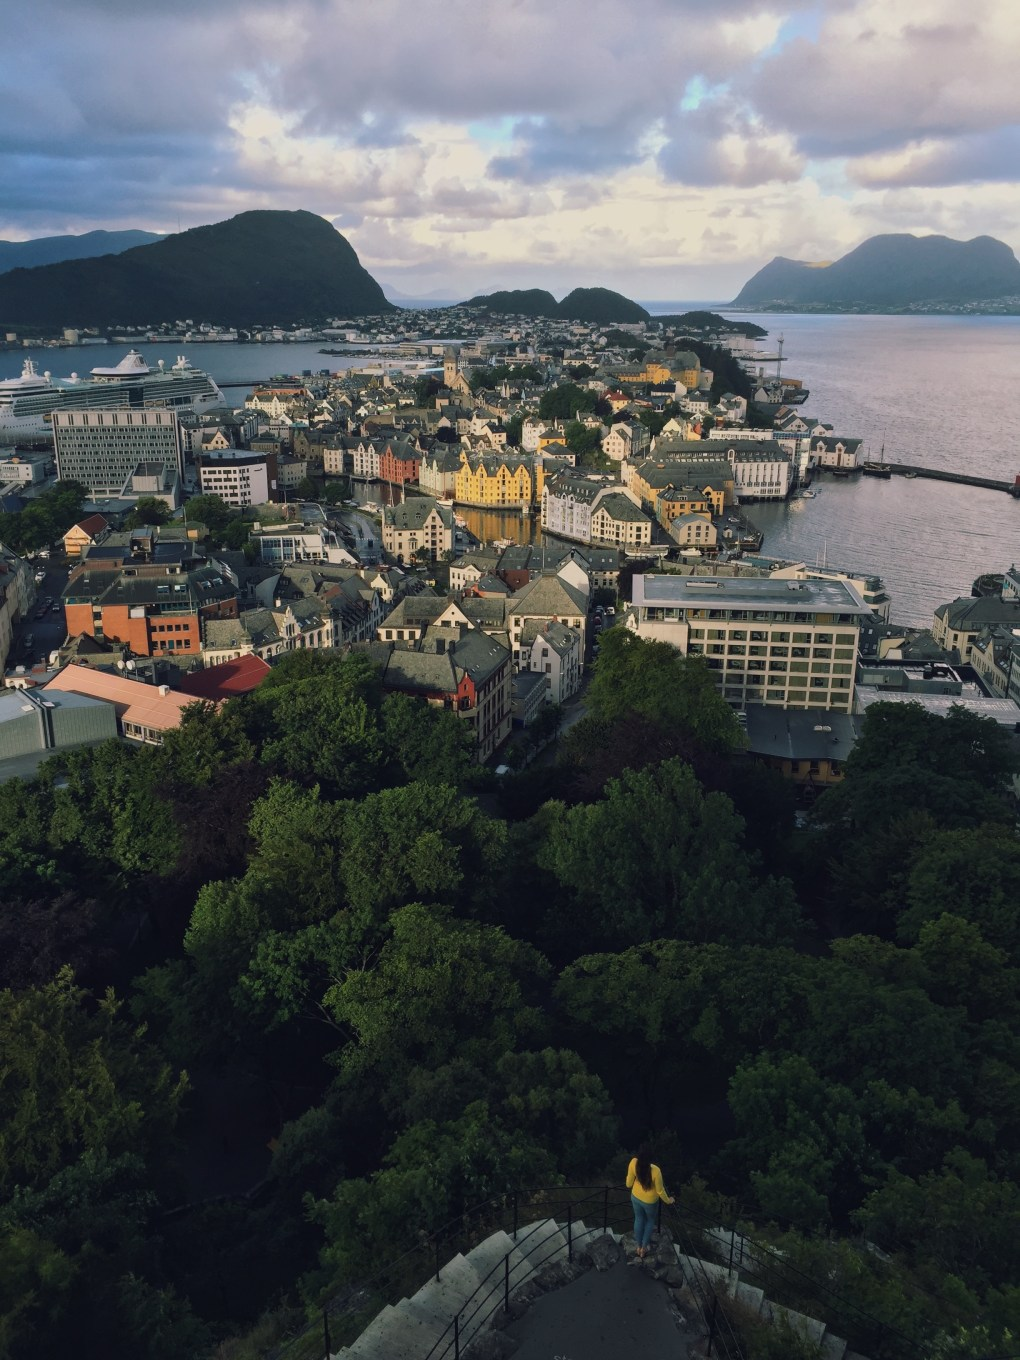 Ålesund - the Venice of the North!